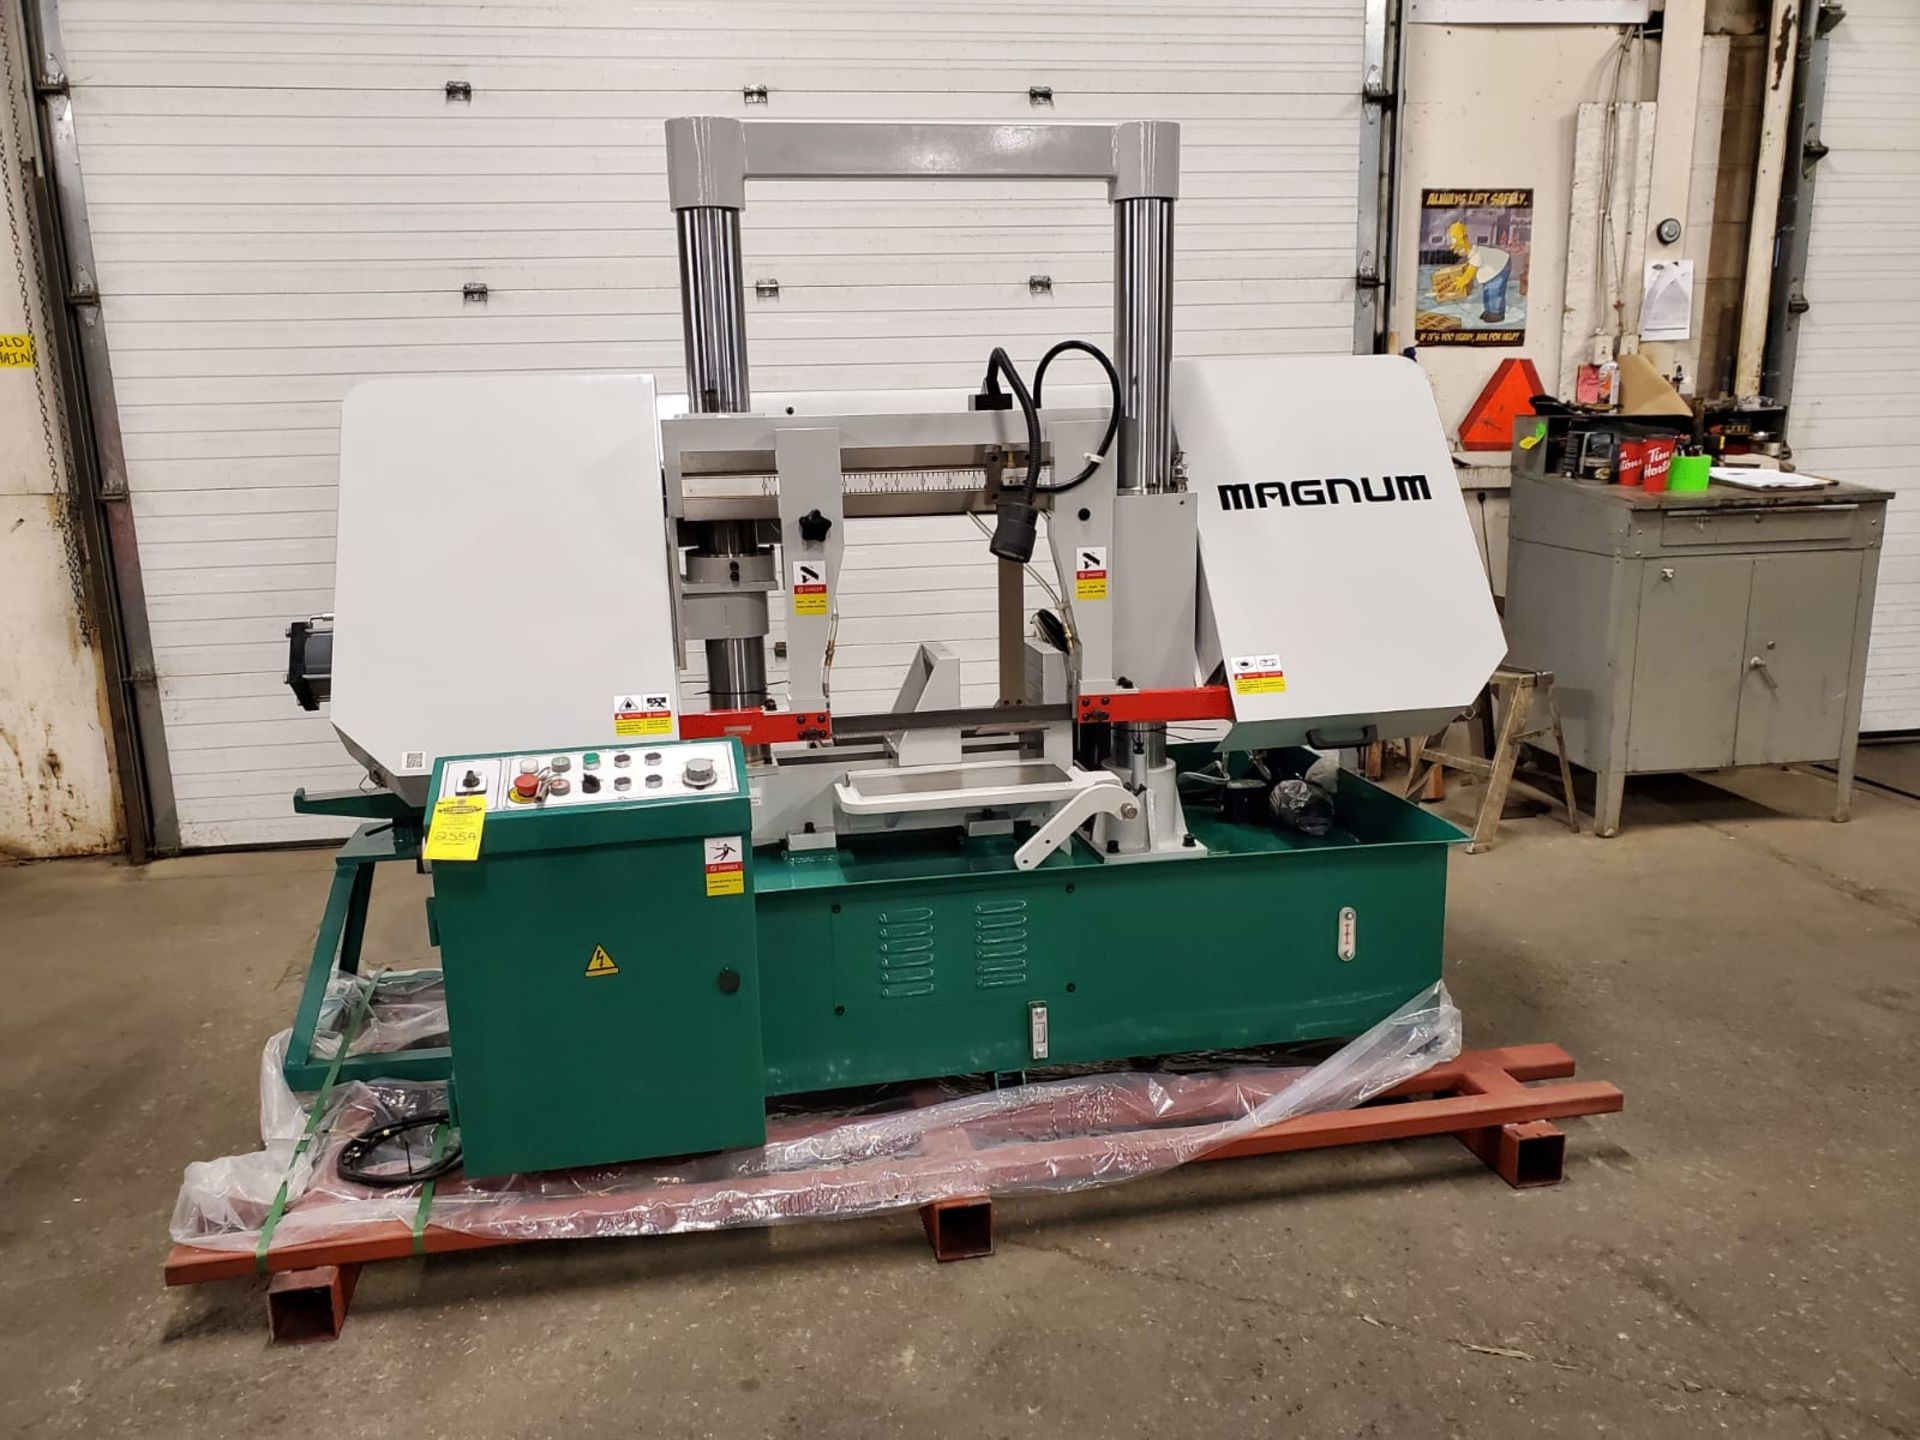 Lot 255A - Magnum BS-1616A Horizontal Band Saw - 16 X 16 inch CUTTING CAPACITY - MINT & UNUSED 220V